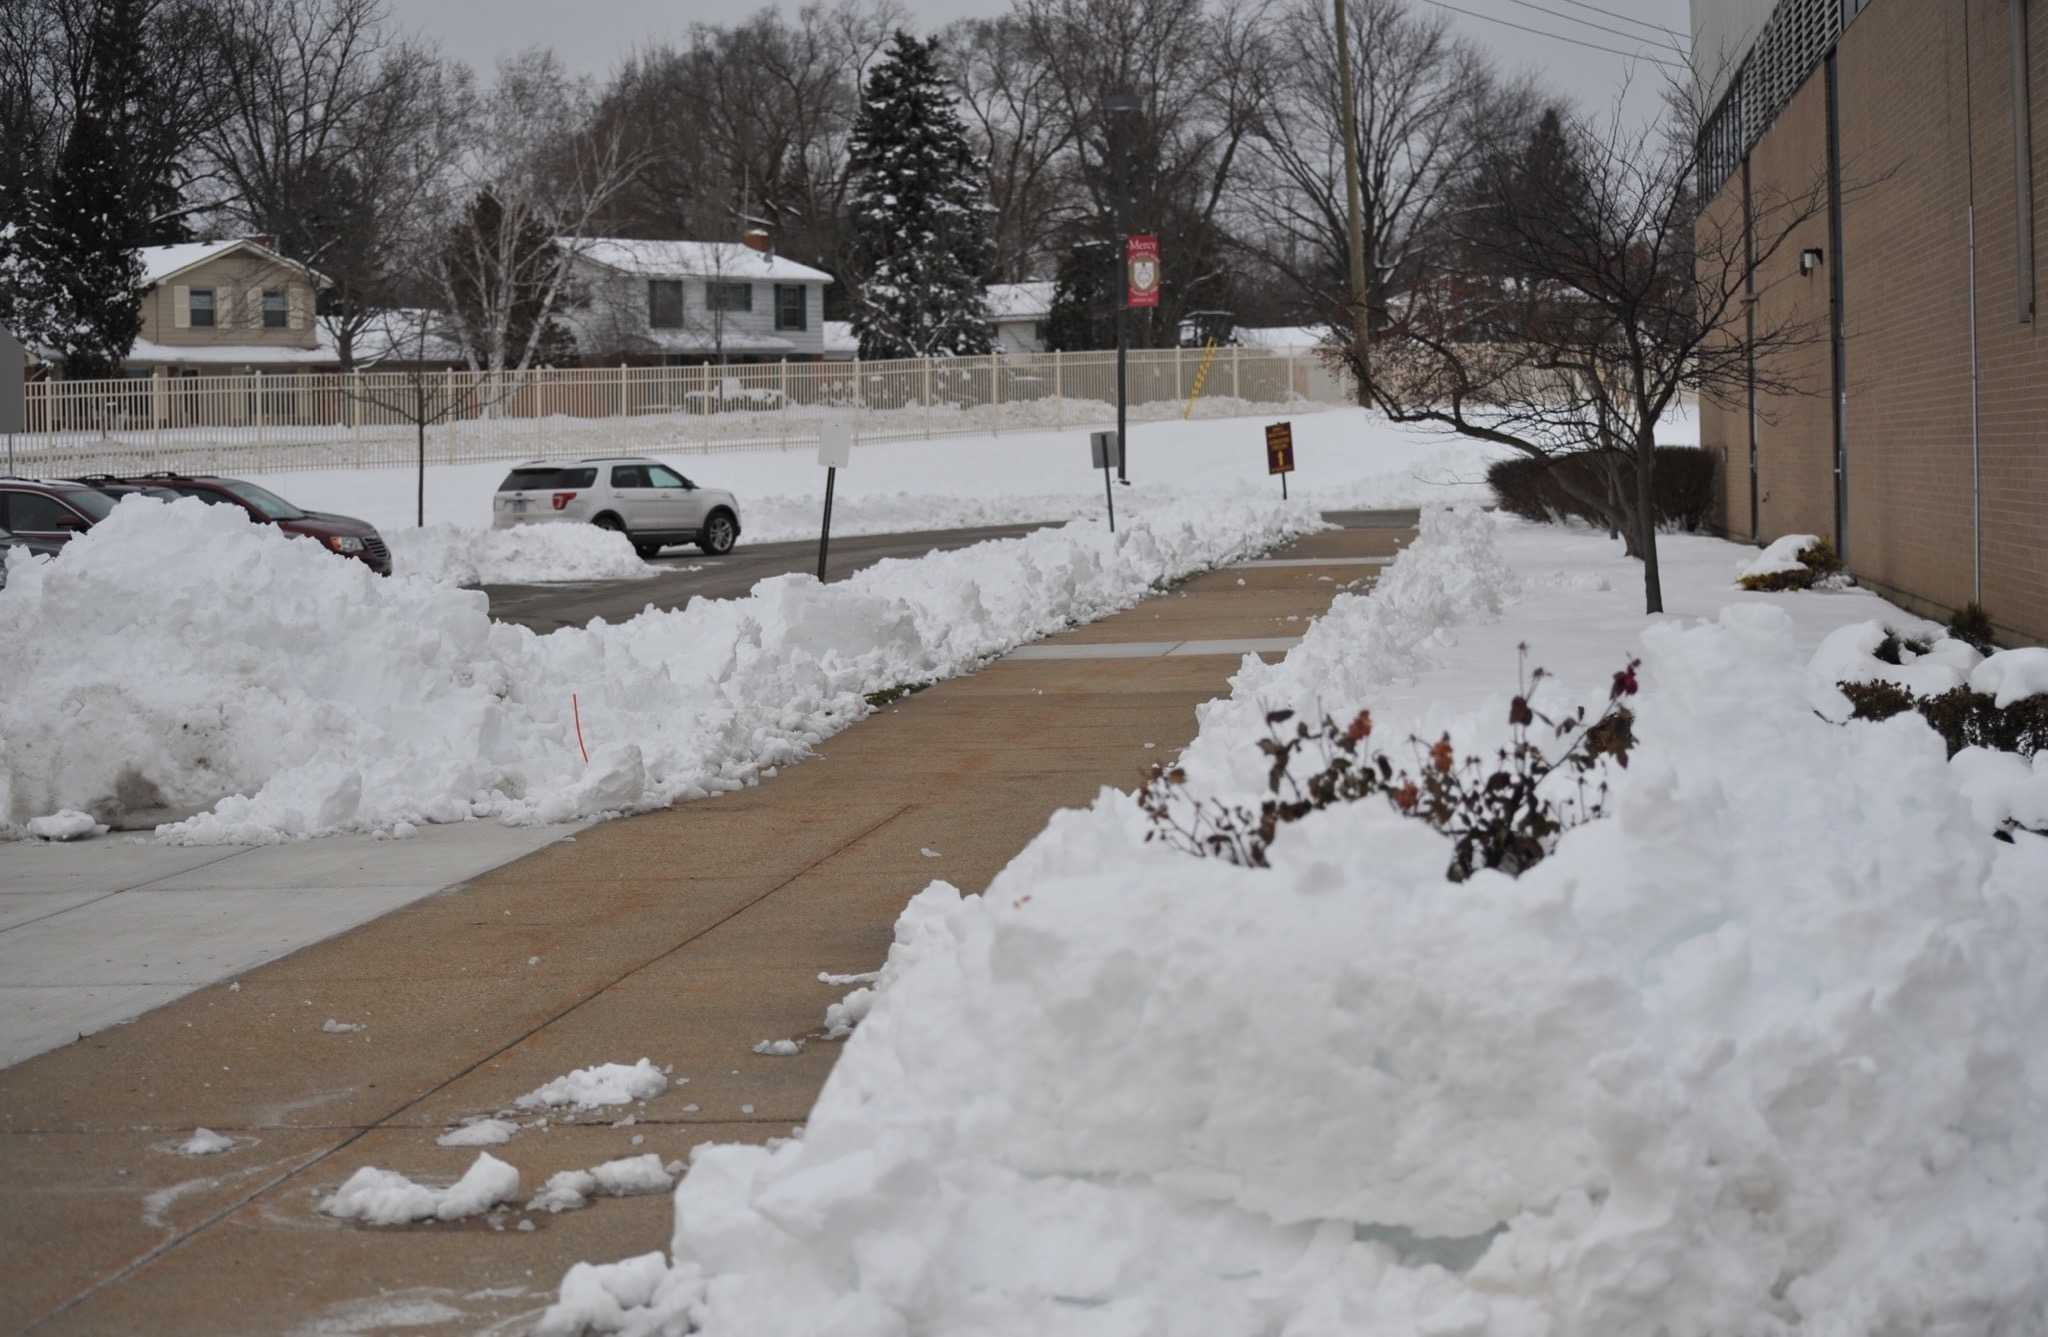 Snow was piled high outside Mercy High School after a recent snow day. (Photo Credit: Clarisa Russenberger)